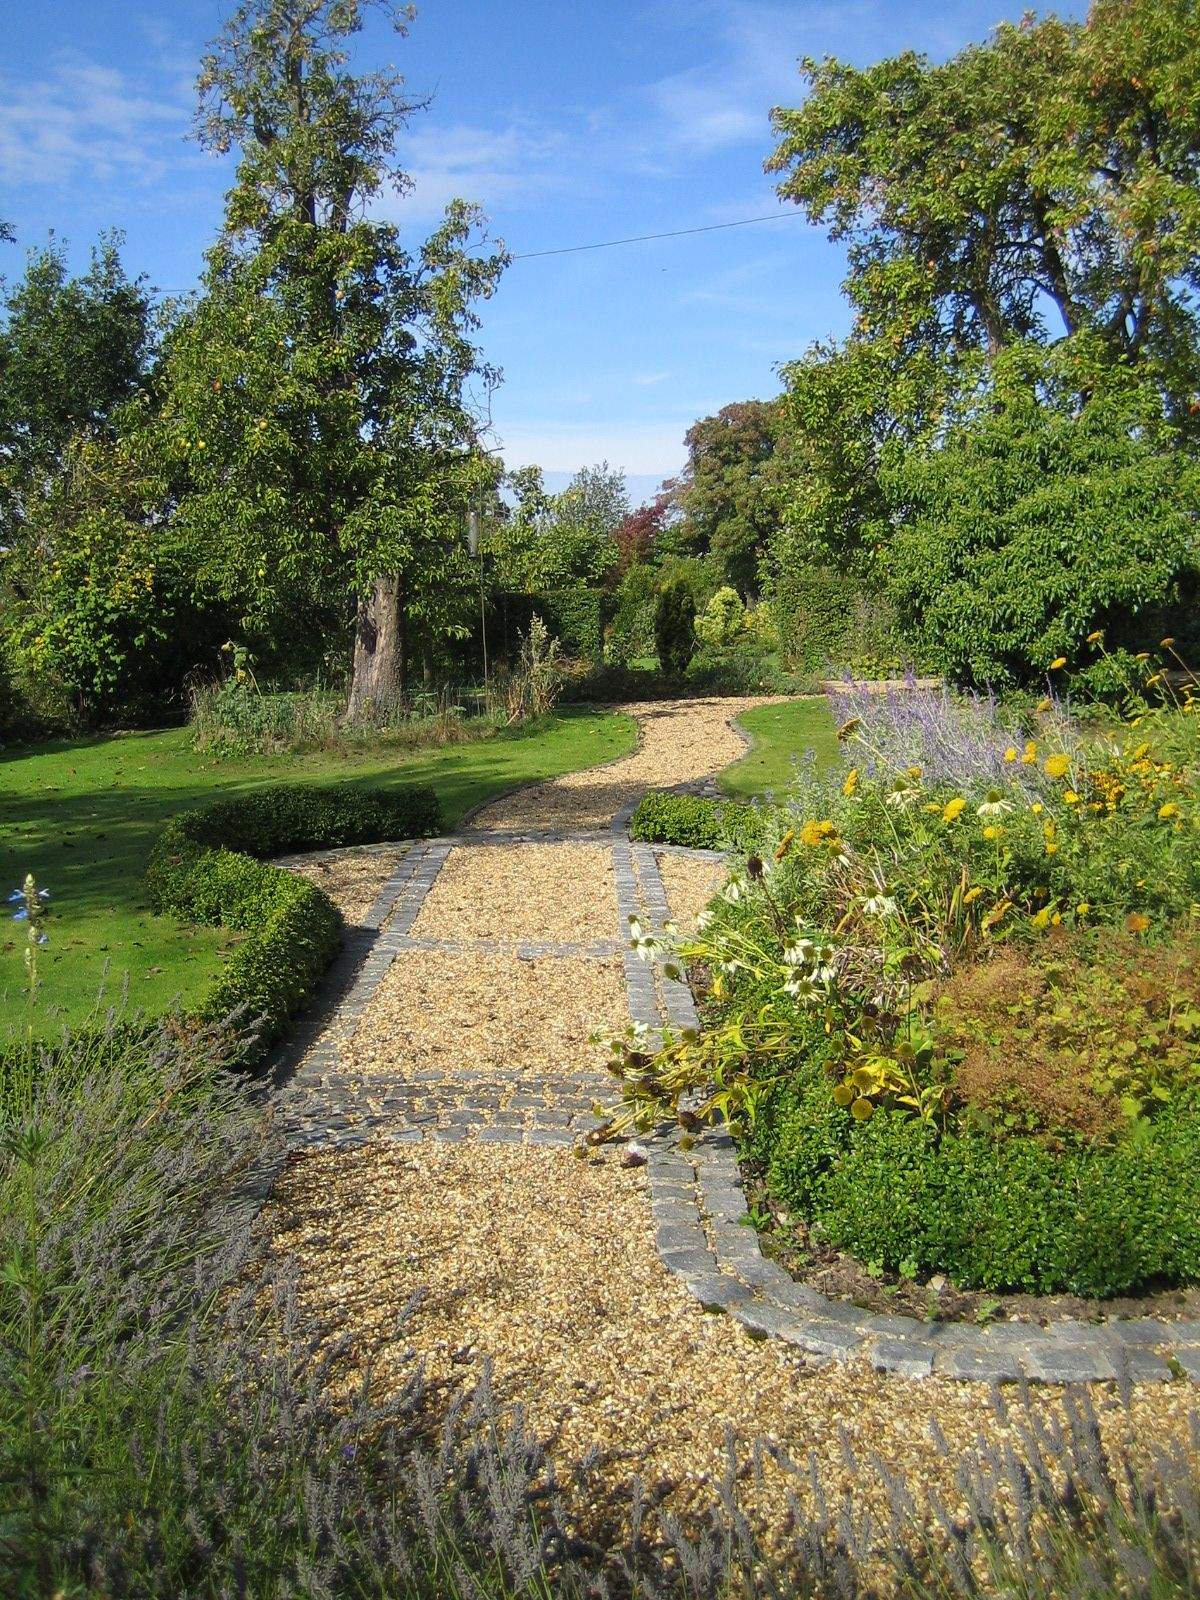 granite setts edge this gravel country garden path from a front